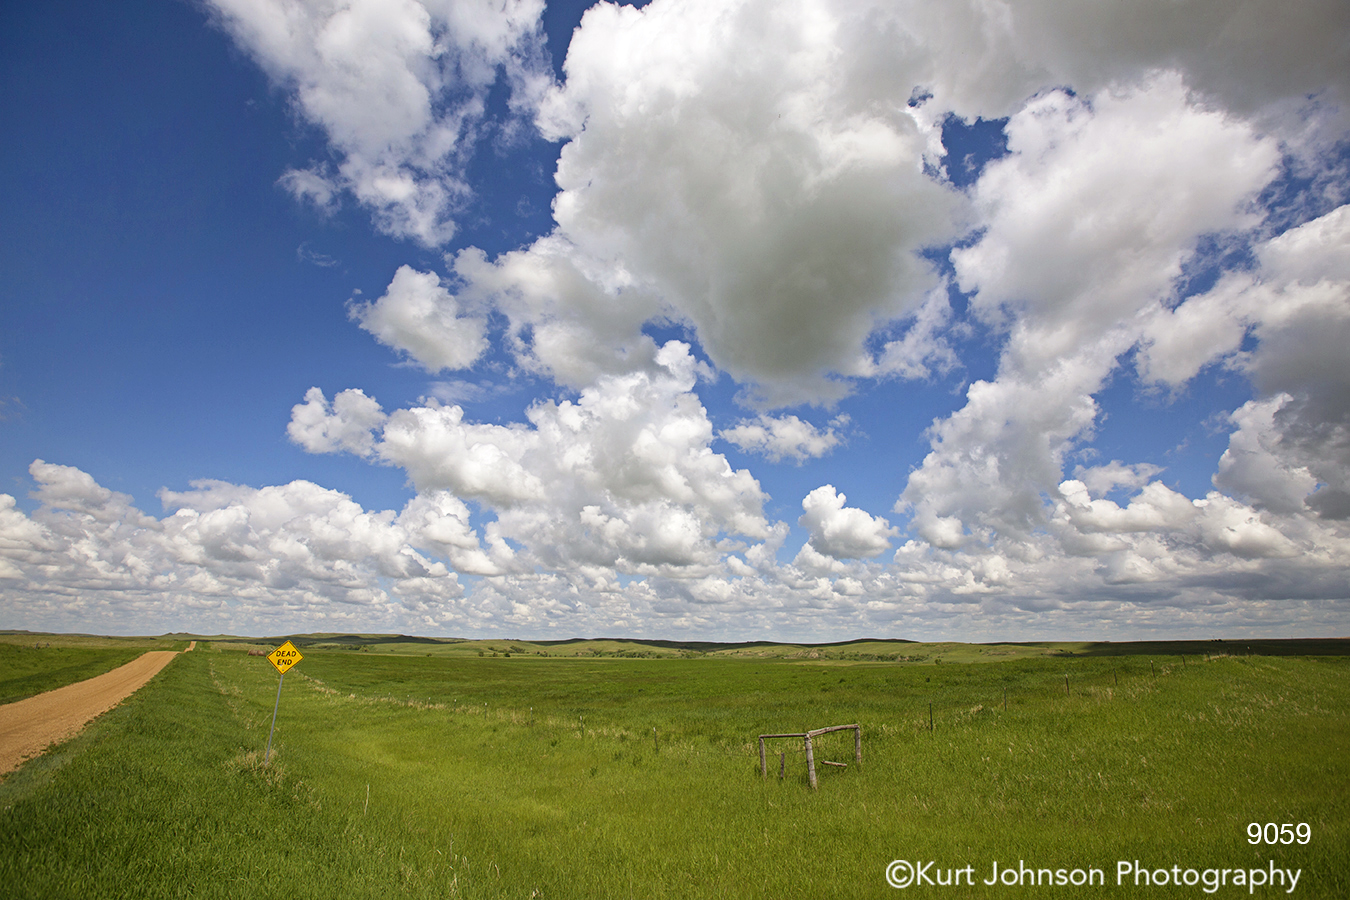 road path yellow sign blue sky clouds landscape country